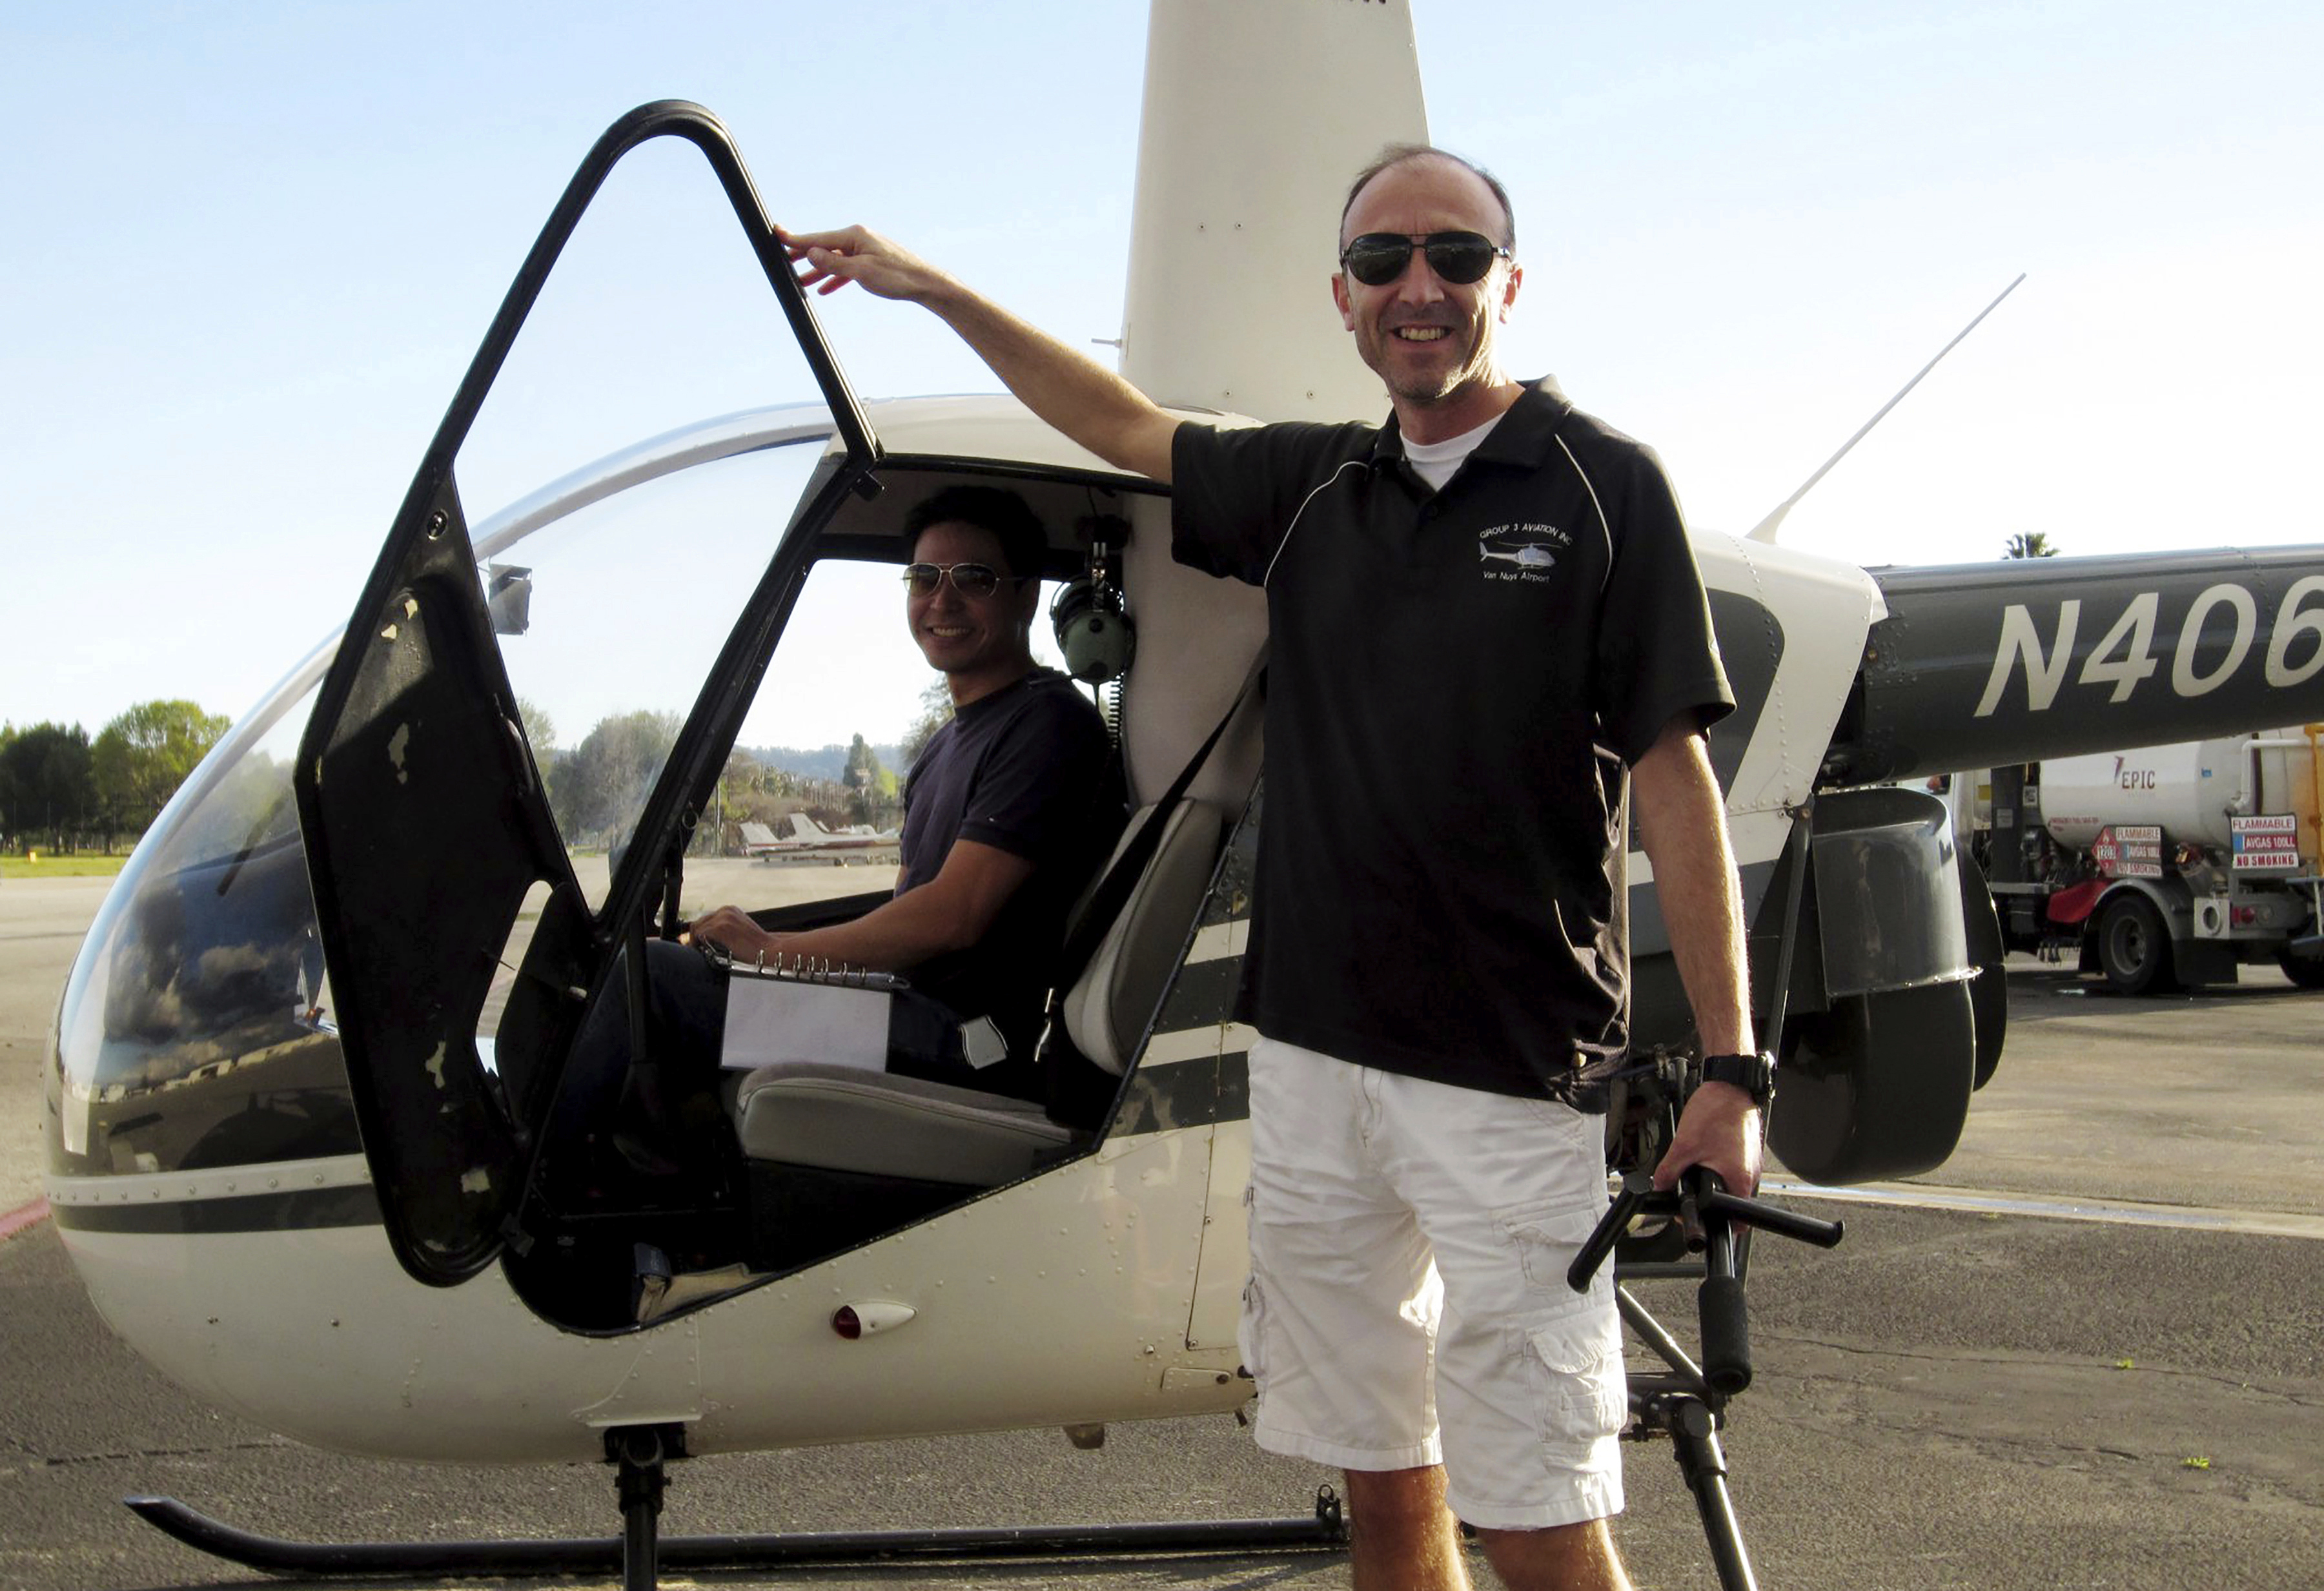 This undated file photo provided by Group 3 Aviation shows helicopter pilot Ara Zobayan standing outside a helicopter, at a location not provided. Zobayan was at the controls of the helicopter that crashed in Southern California Sunday, Jan. 26, 2020, killing all nine aboard including former Lakers star Kobe Bryant. The other person inside is unidentified. Zobayan's life in the cockpit began as a passenger, a tourist looking out of a helicopter into the vast Grand Canyon. It would be a transformational trip, prompting Zobayan in 1998 to learn to pilot the aircraft himself.